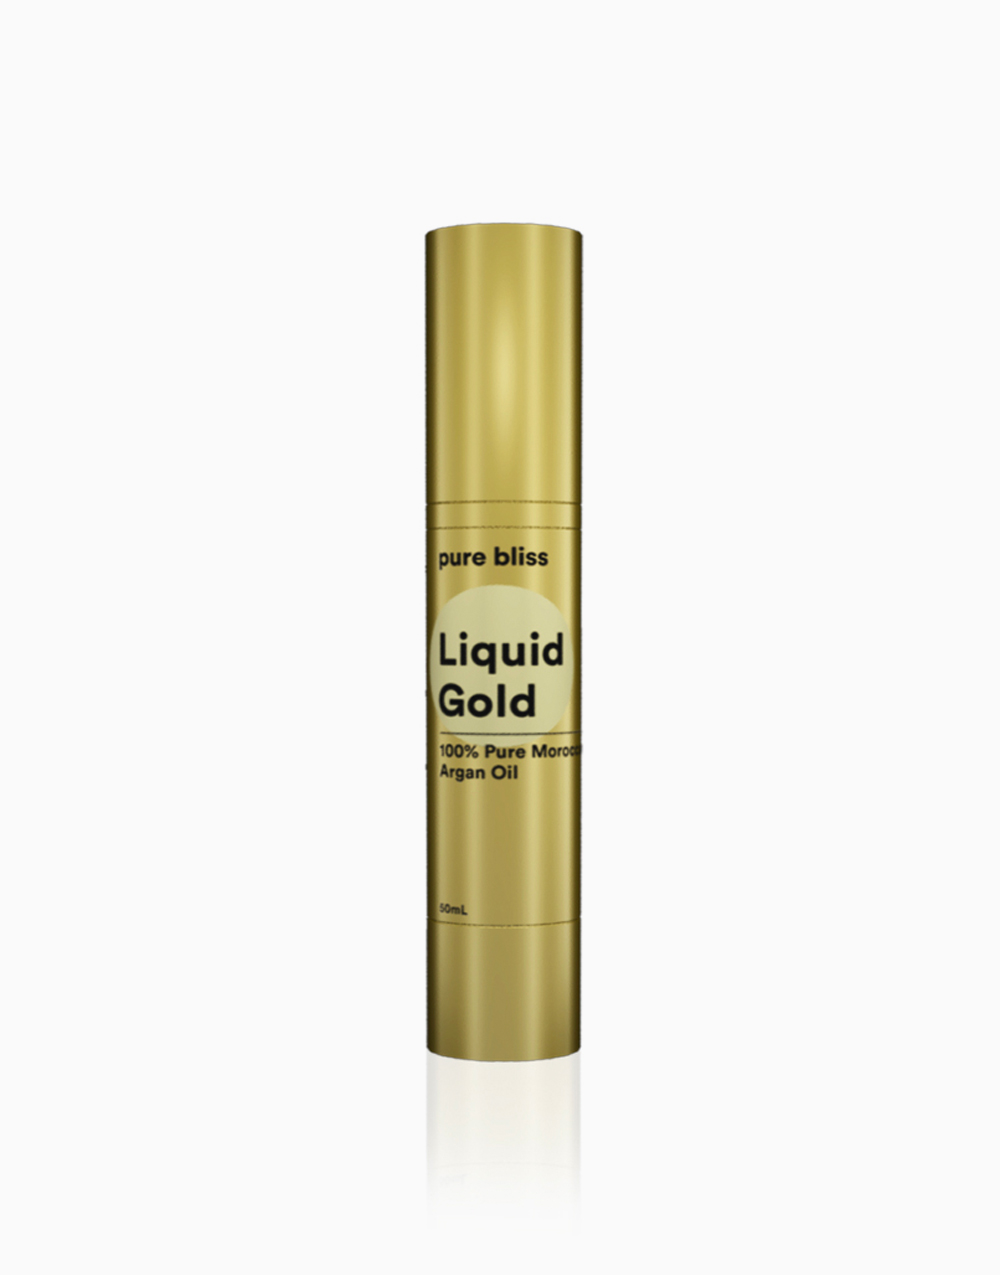 Limited Edition Liquid Gold 100% Pure Moroccan Argan Oil (50ml) by Pure Bliss